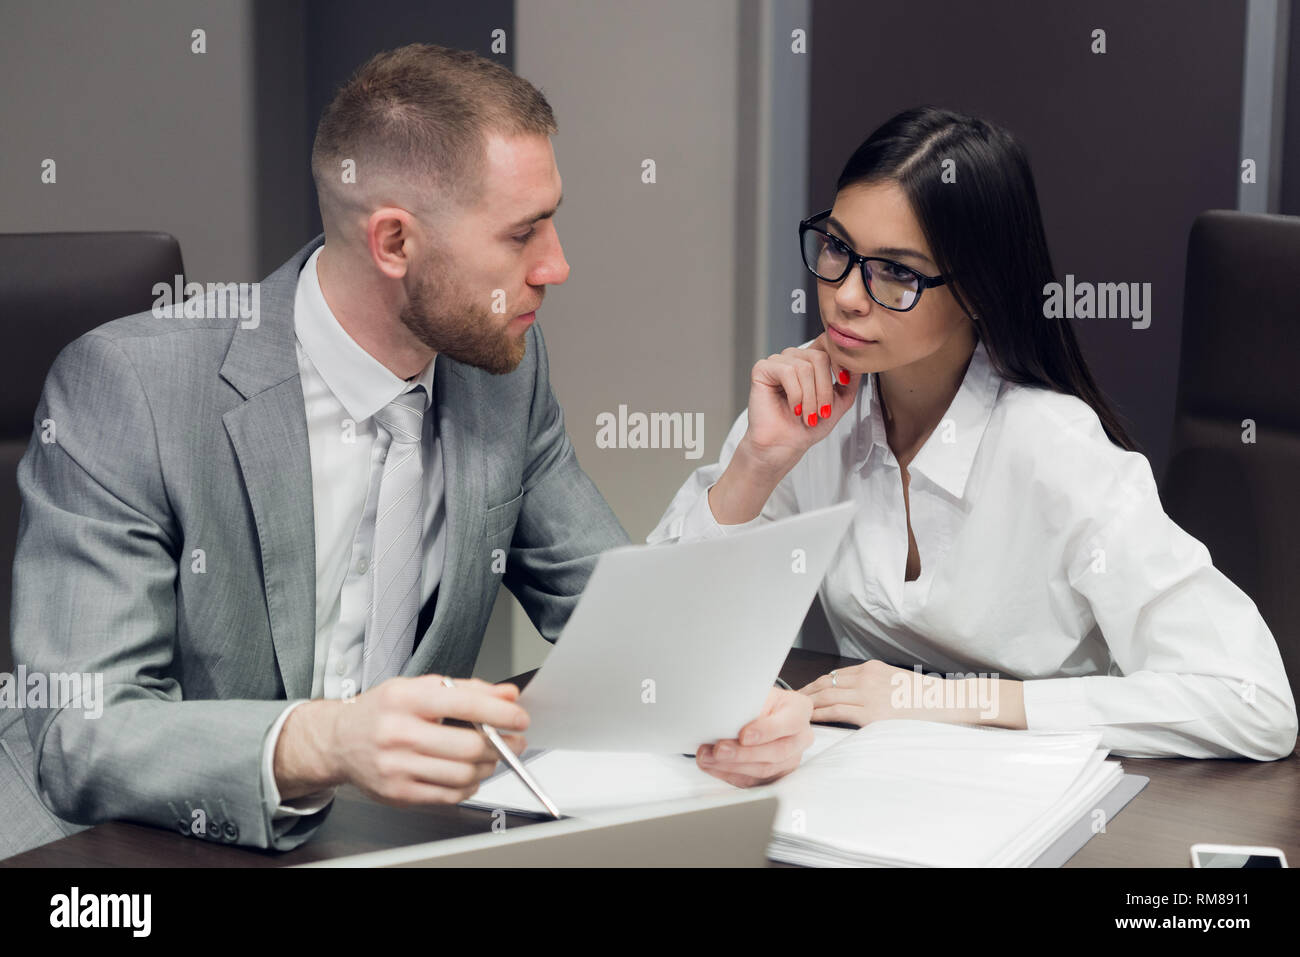 Two young business people discussing work during a business presentation in conference room - Stock Image